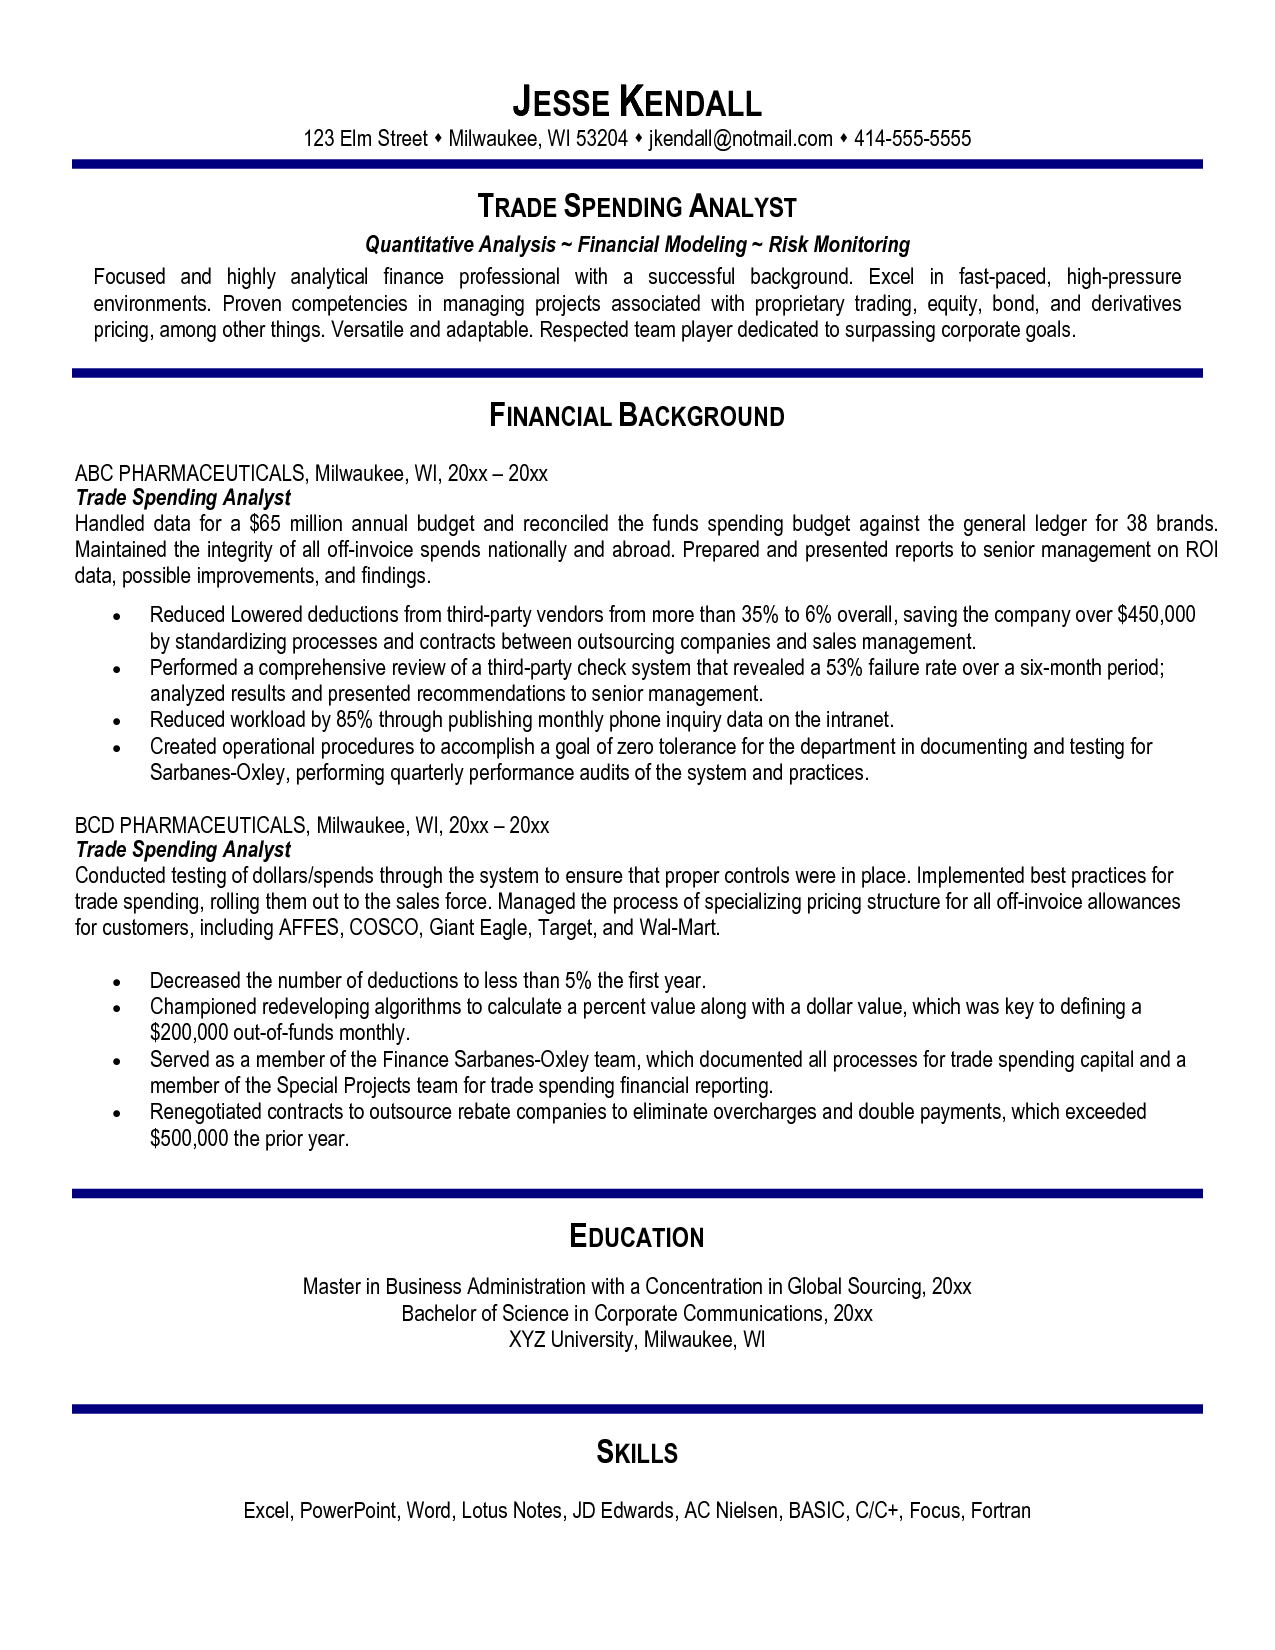 Proprietary Trading Resume Sample - http://www.resumecareer.info/proprietary